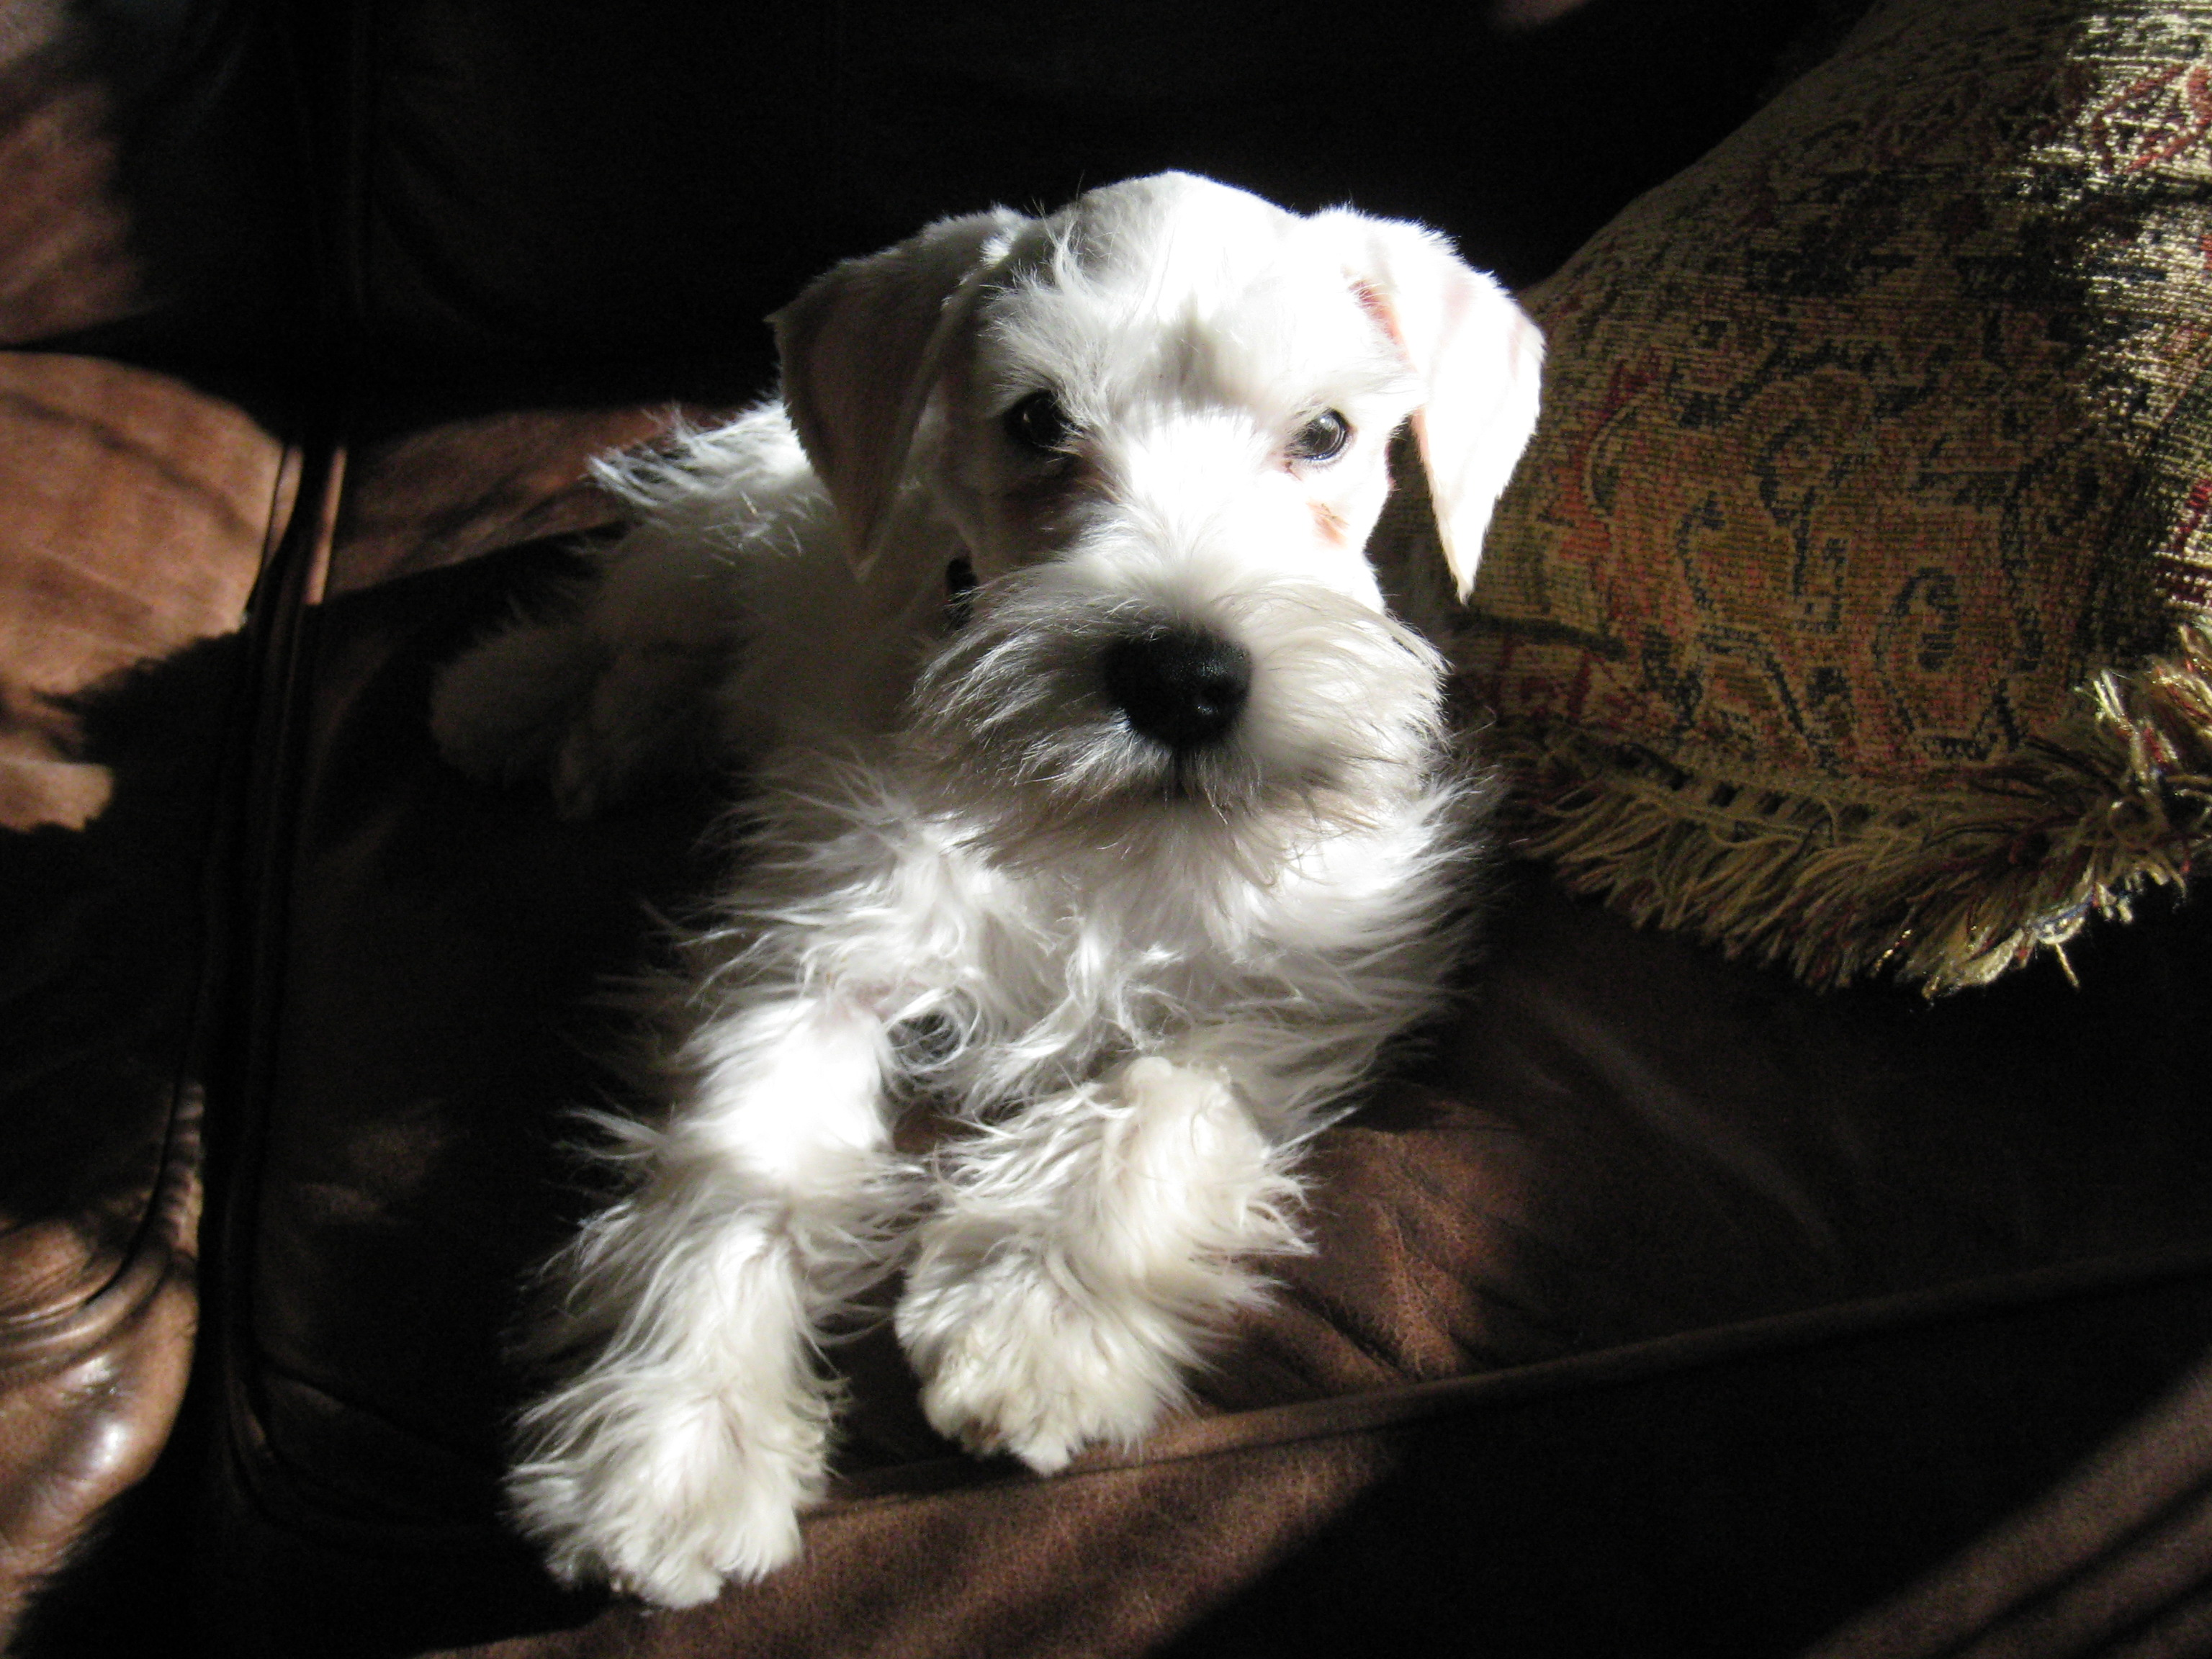 Miniature Schnauzer Dog Picture #4825 | Pet Gallery | PetPeoplesPlace ...